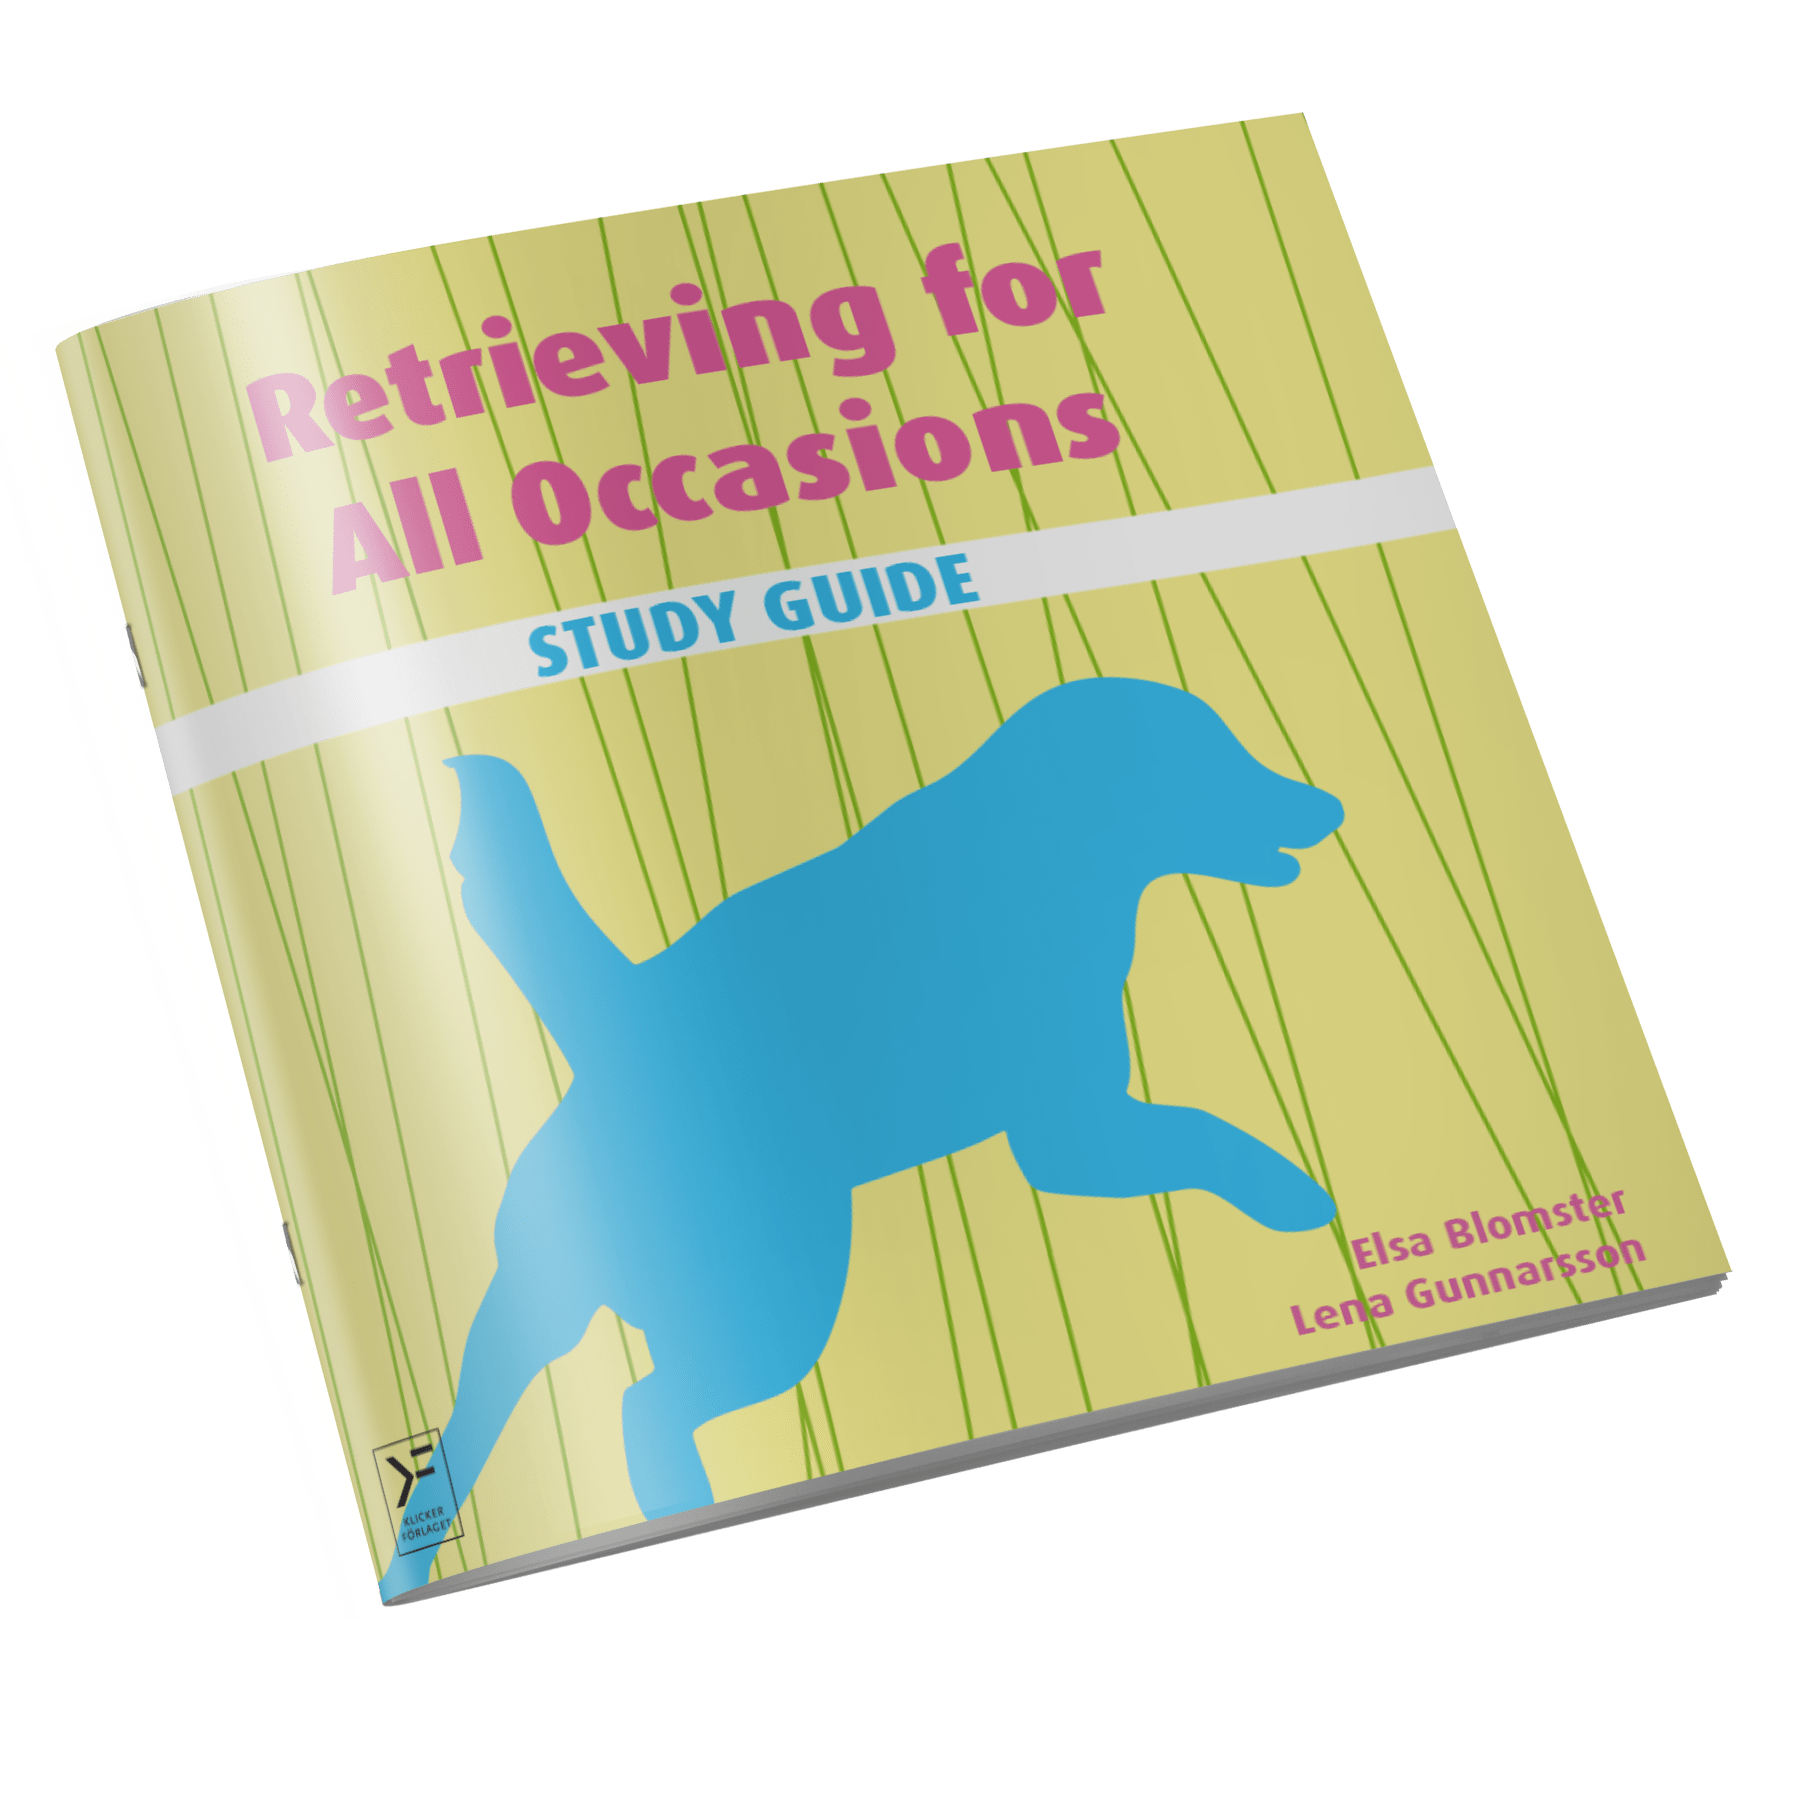 Retrieving for All Occasions – Study Guide